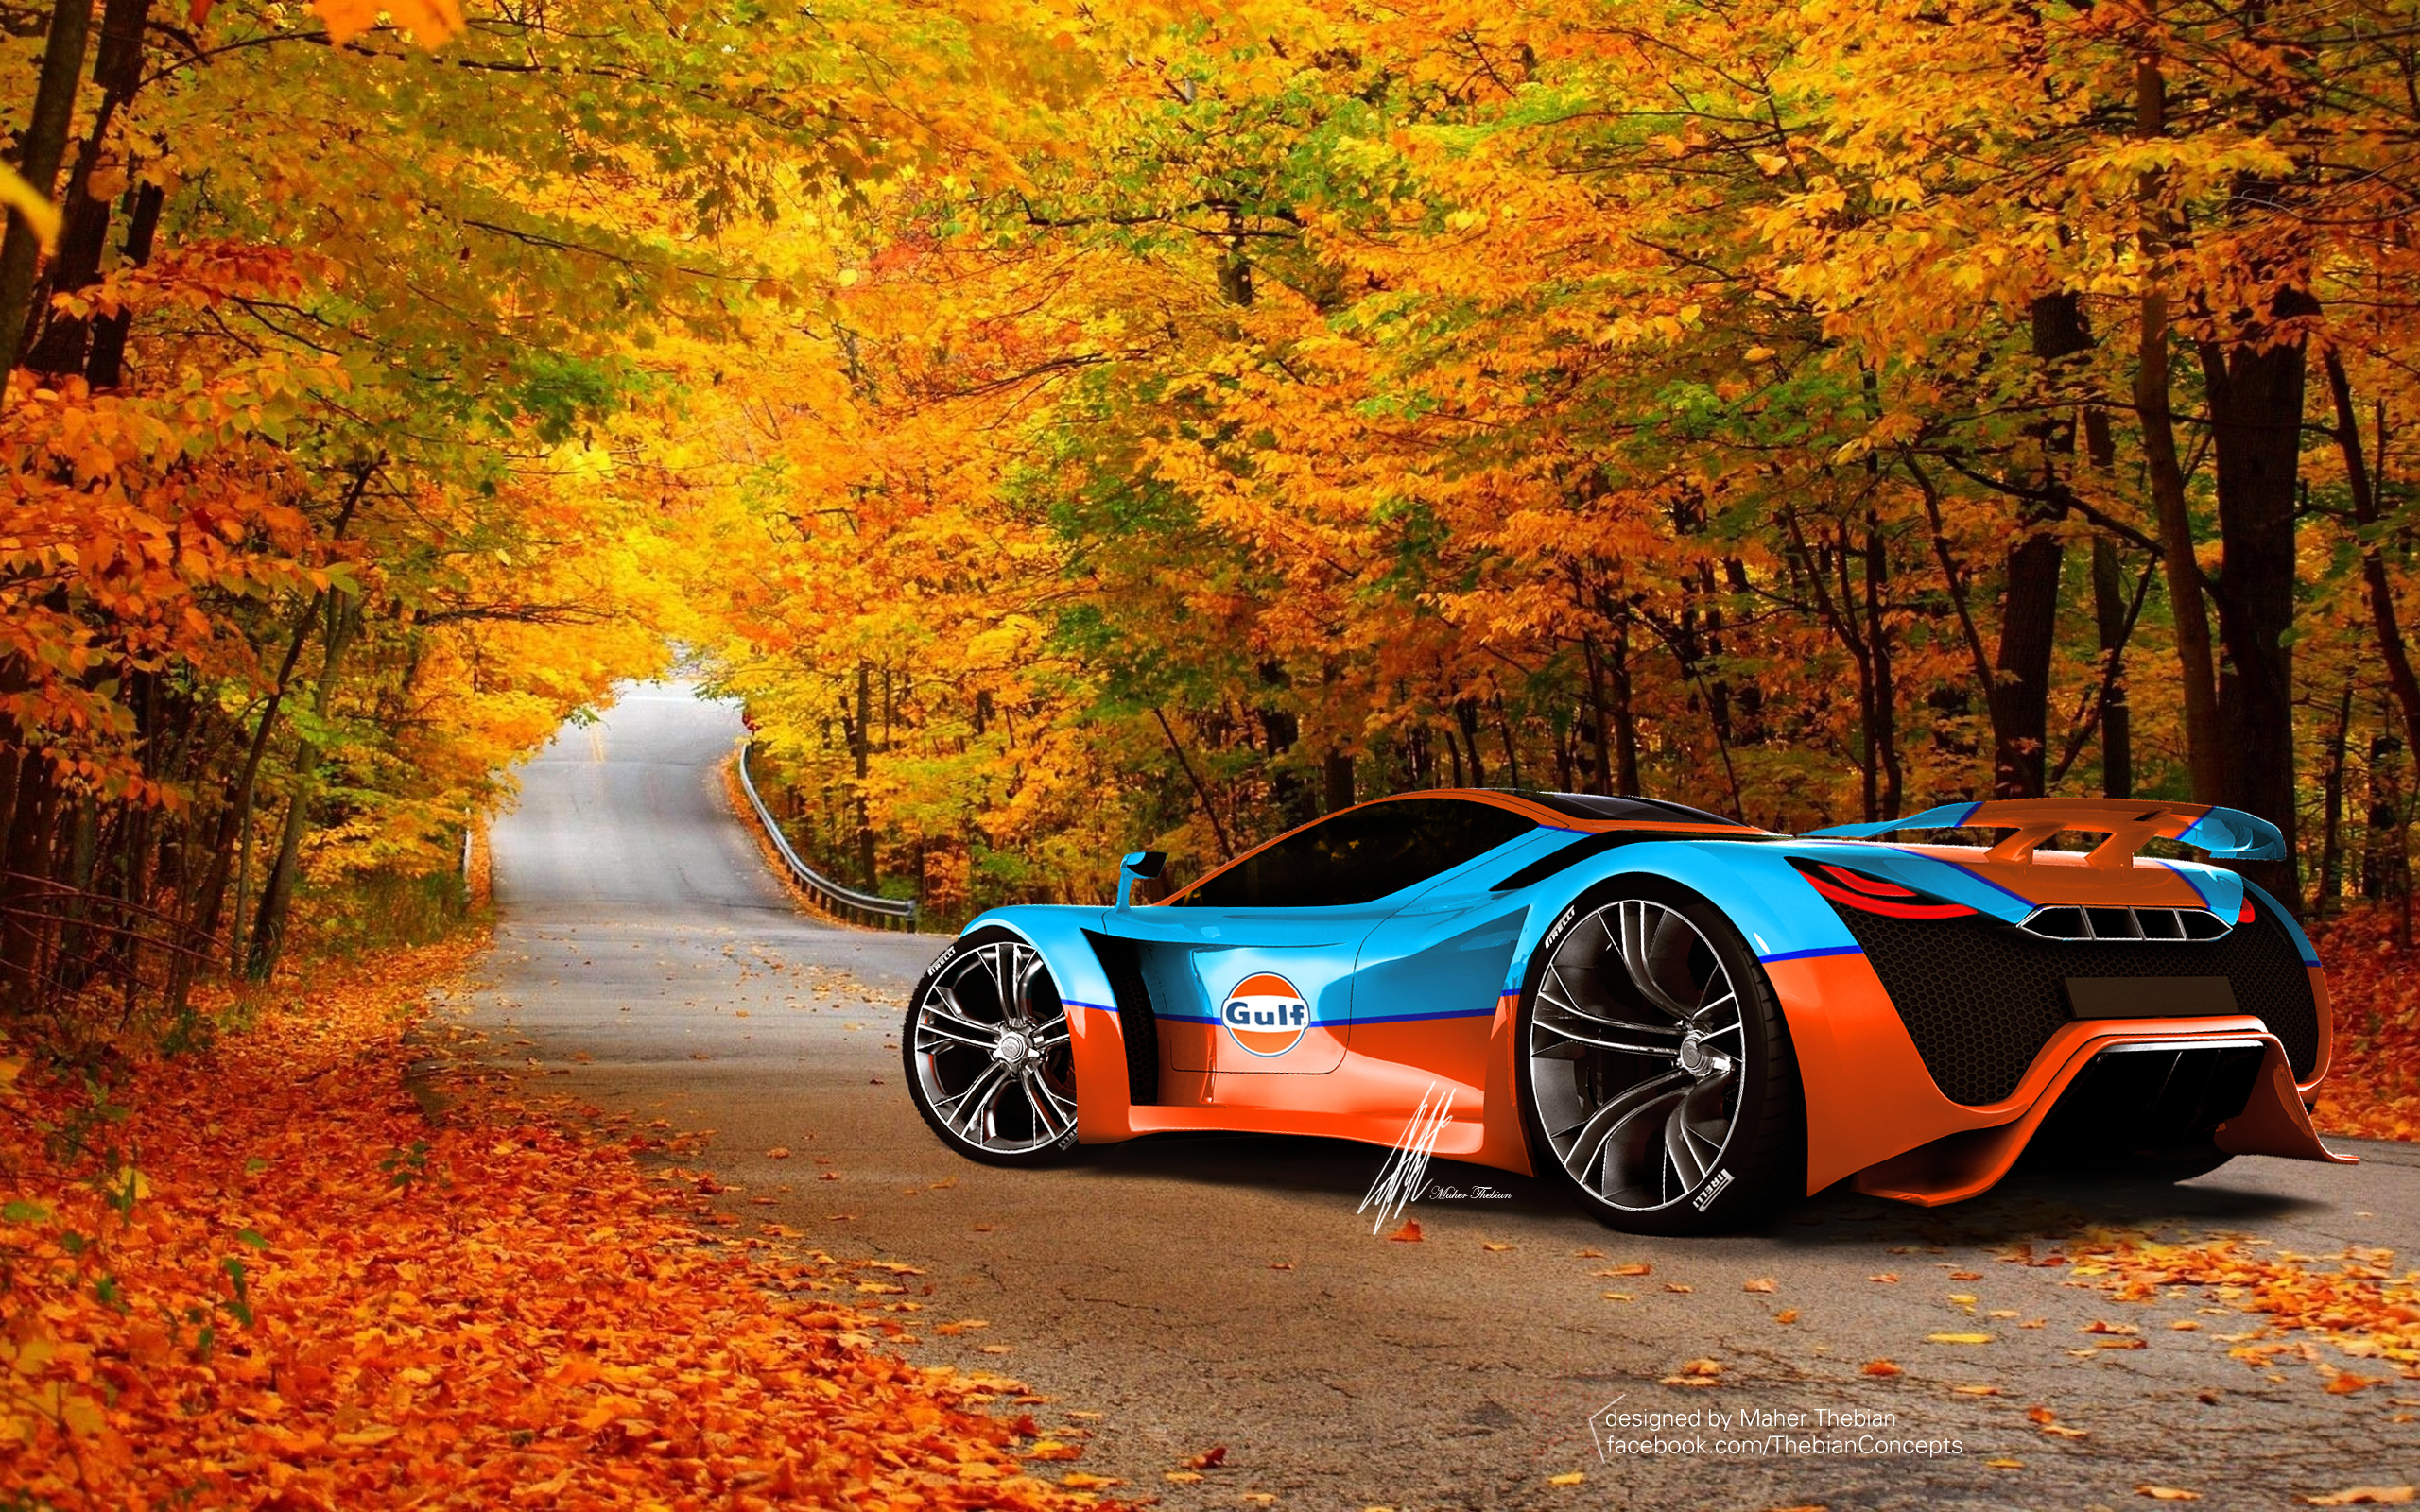 Imagenes De Autos Hd: Background Images - Wallpaper Abyss